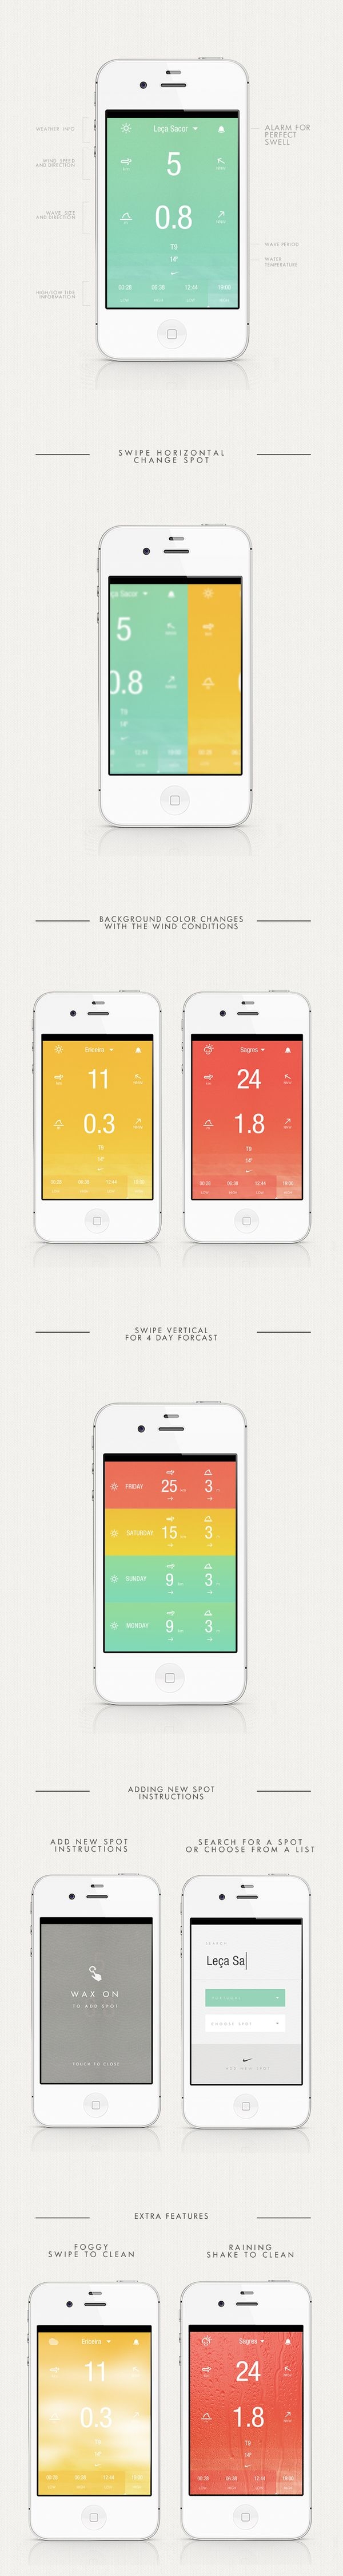 BREEZE by Luis Vaz, via Behance